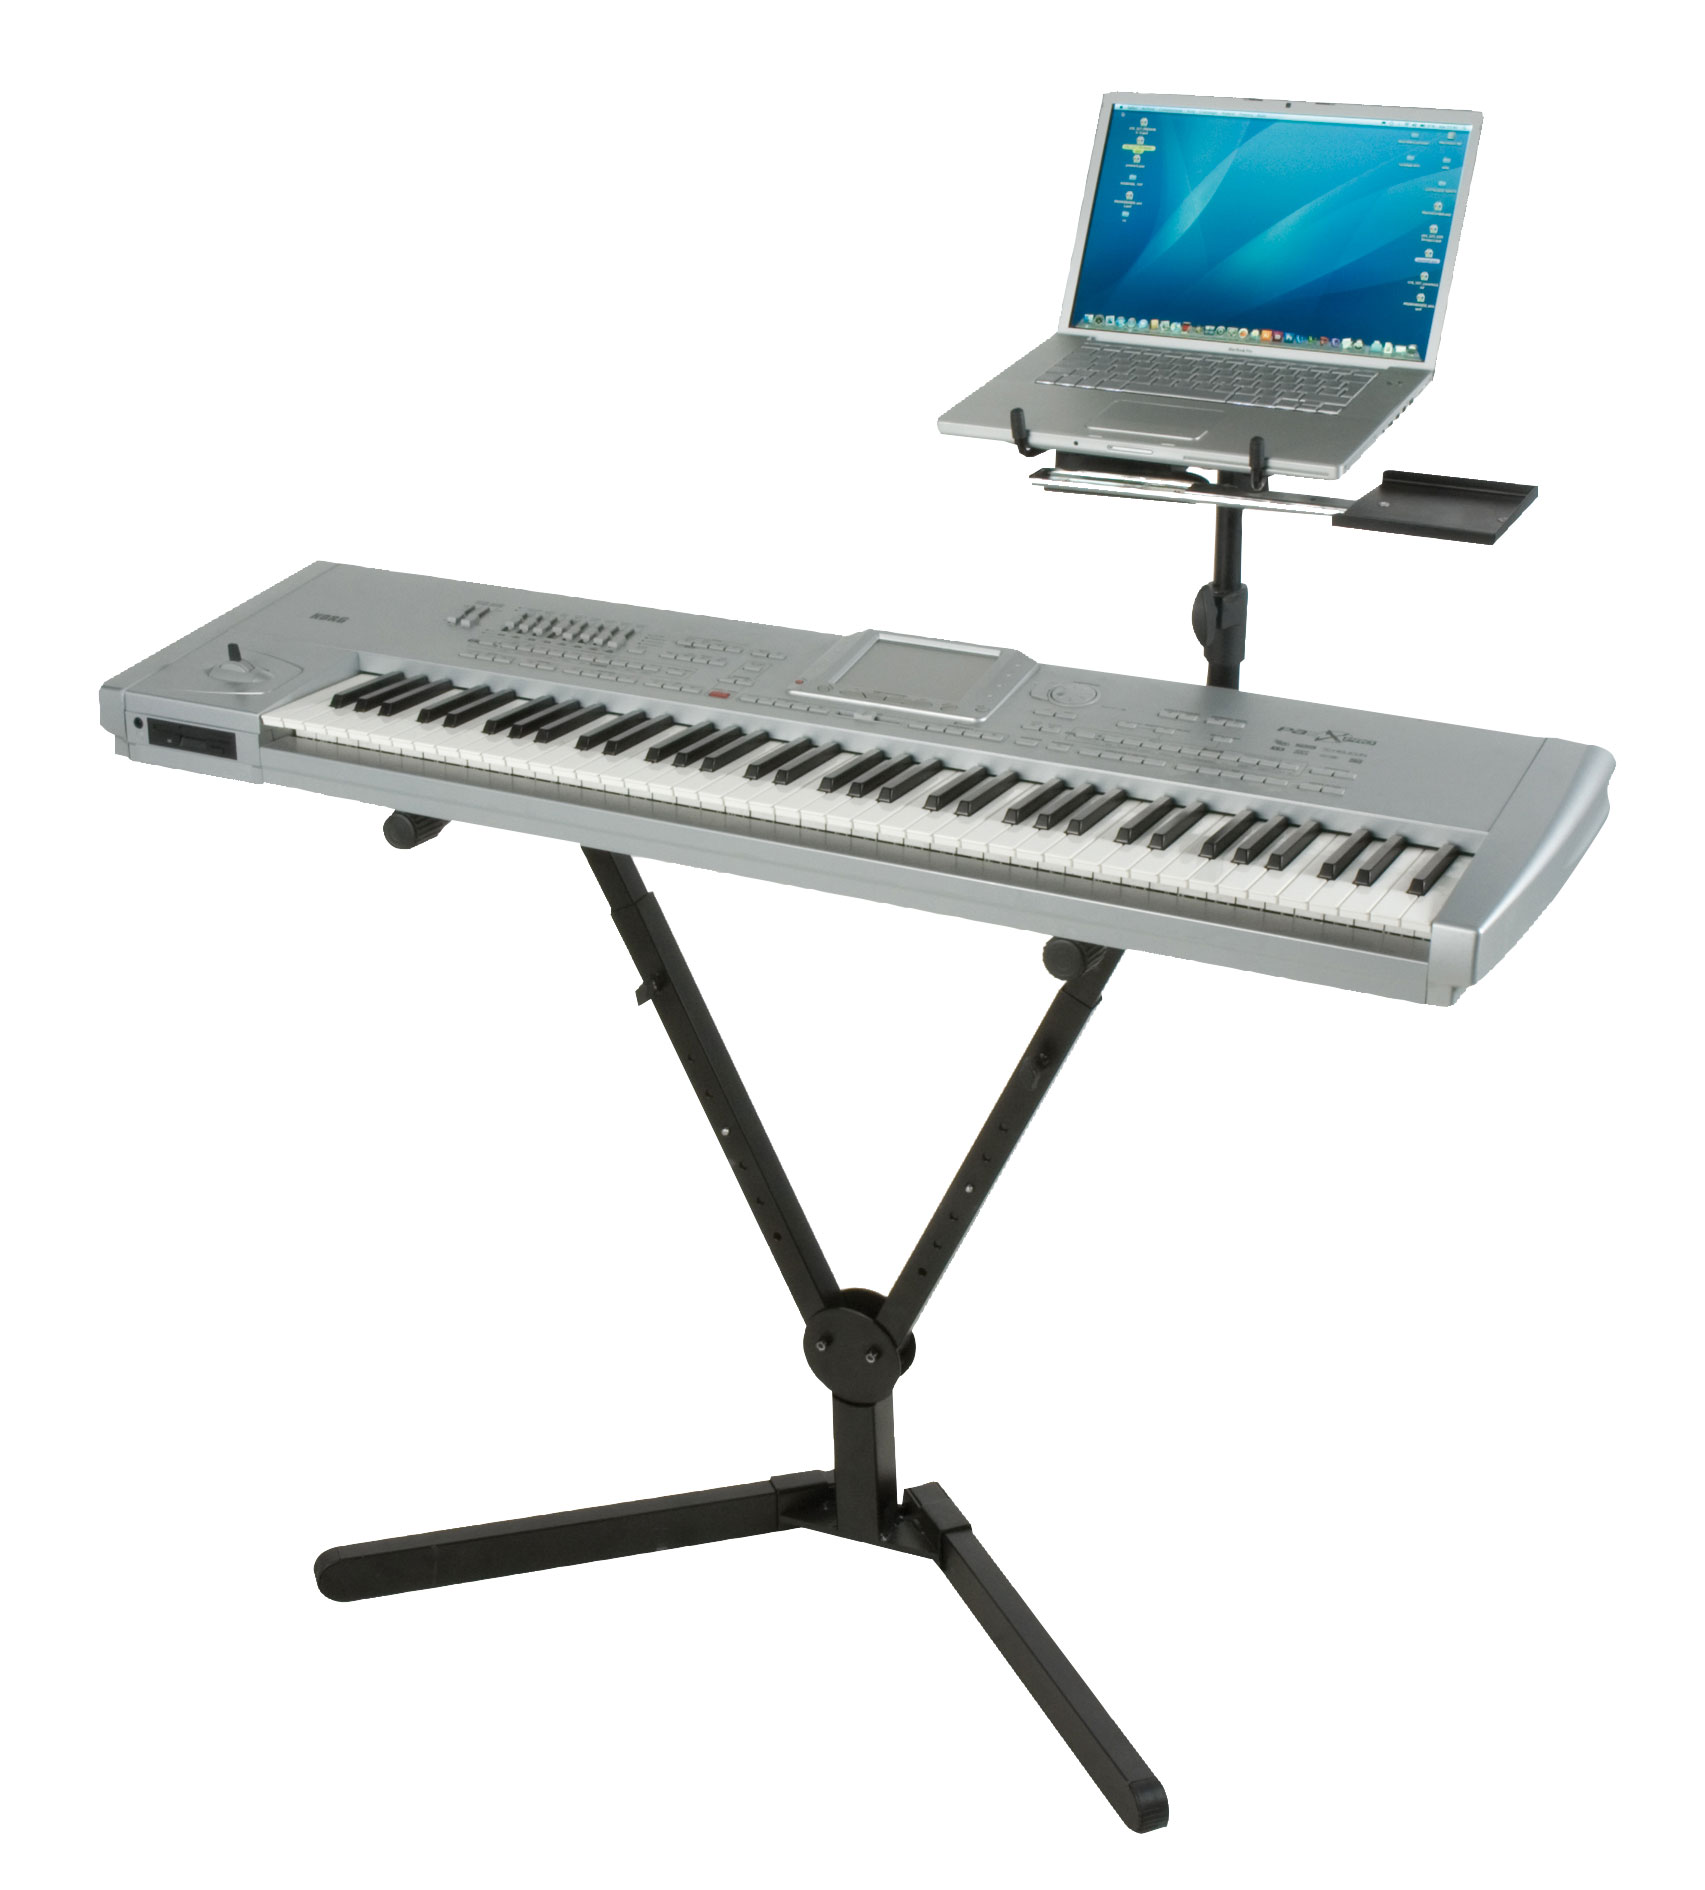 Quik Lok QLY 40 KEYBOARD STAND Y-Shaped